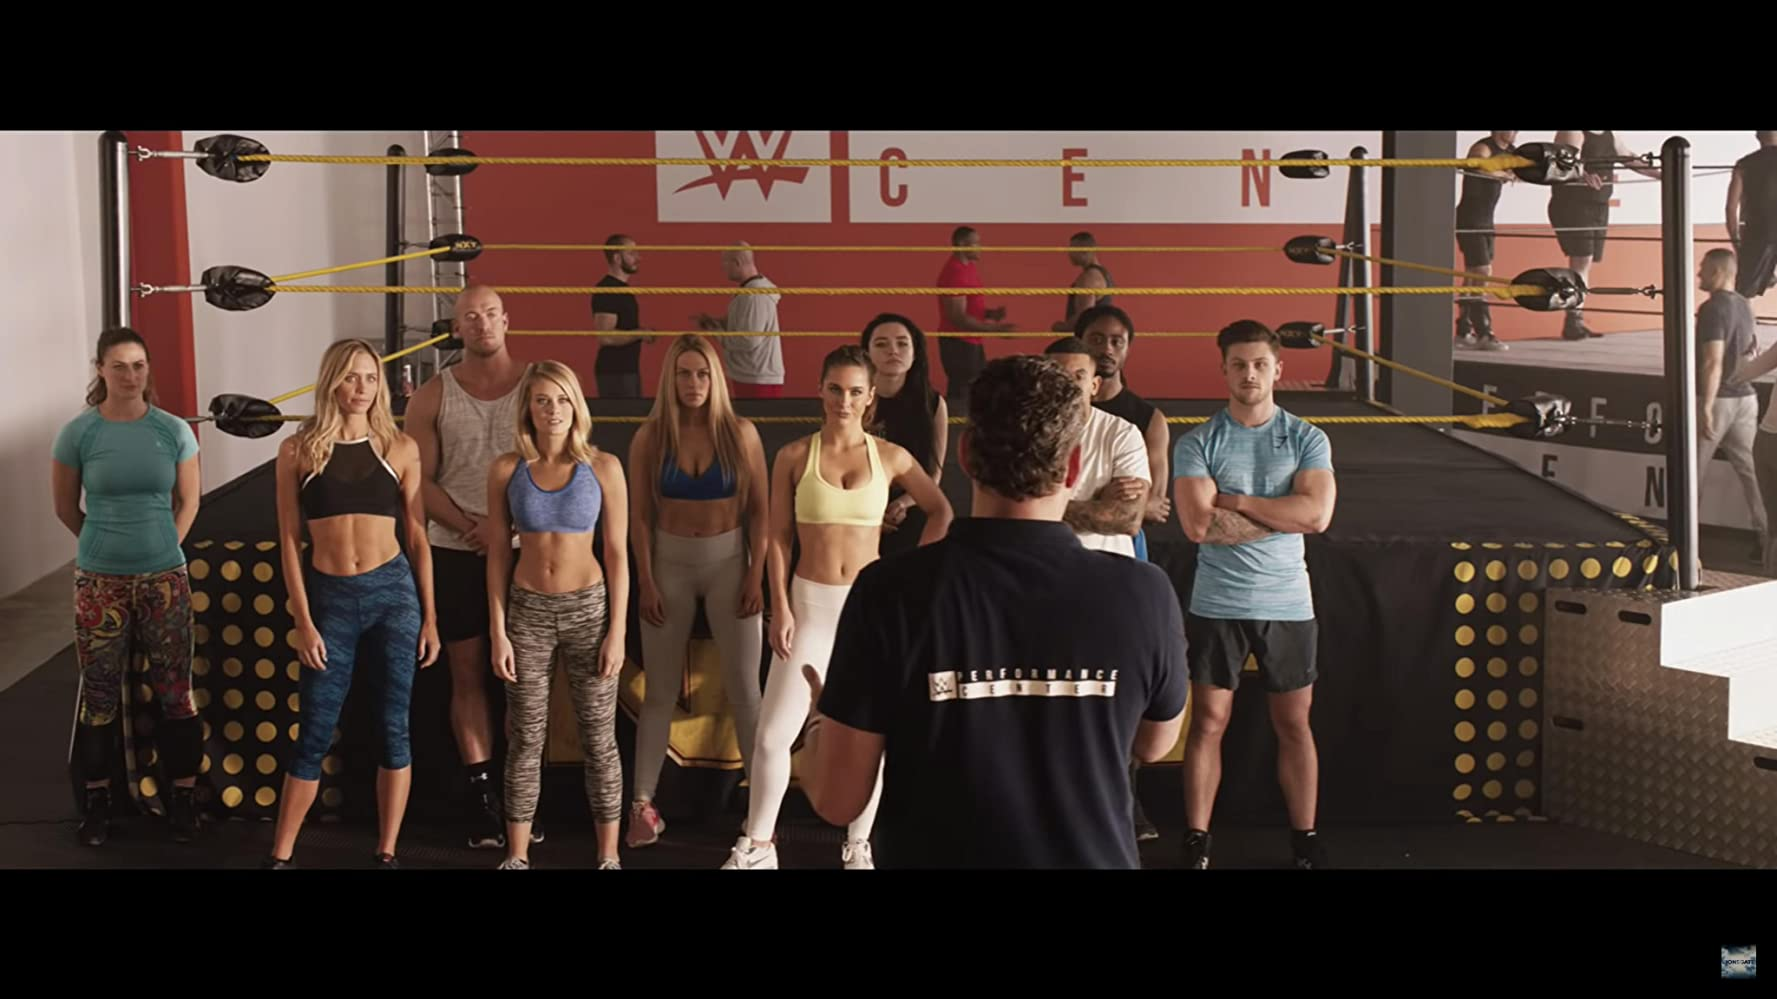 Kim Matula, Ellie Gonsalves, Aqueela Zoll, and Florence Pugh in Fighting with My Family (2019)